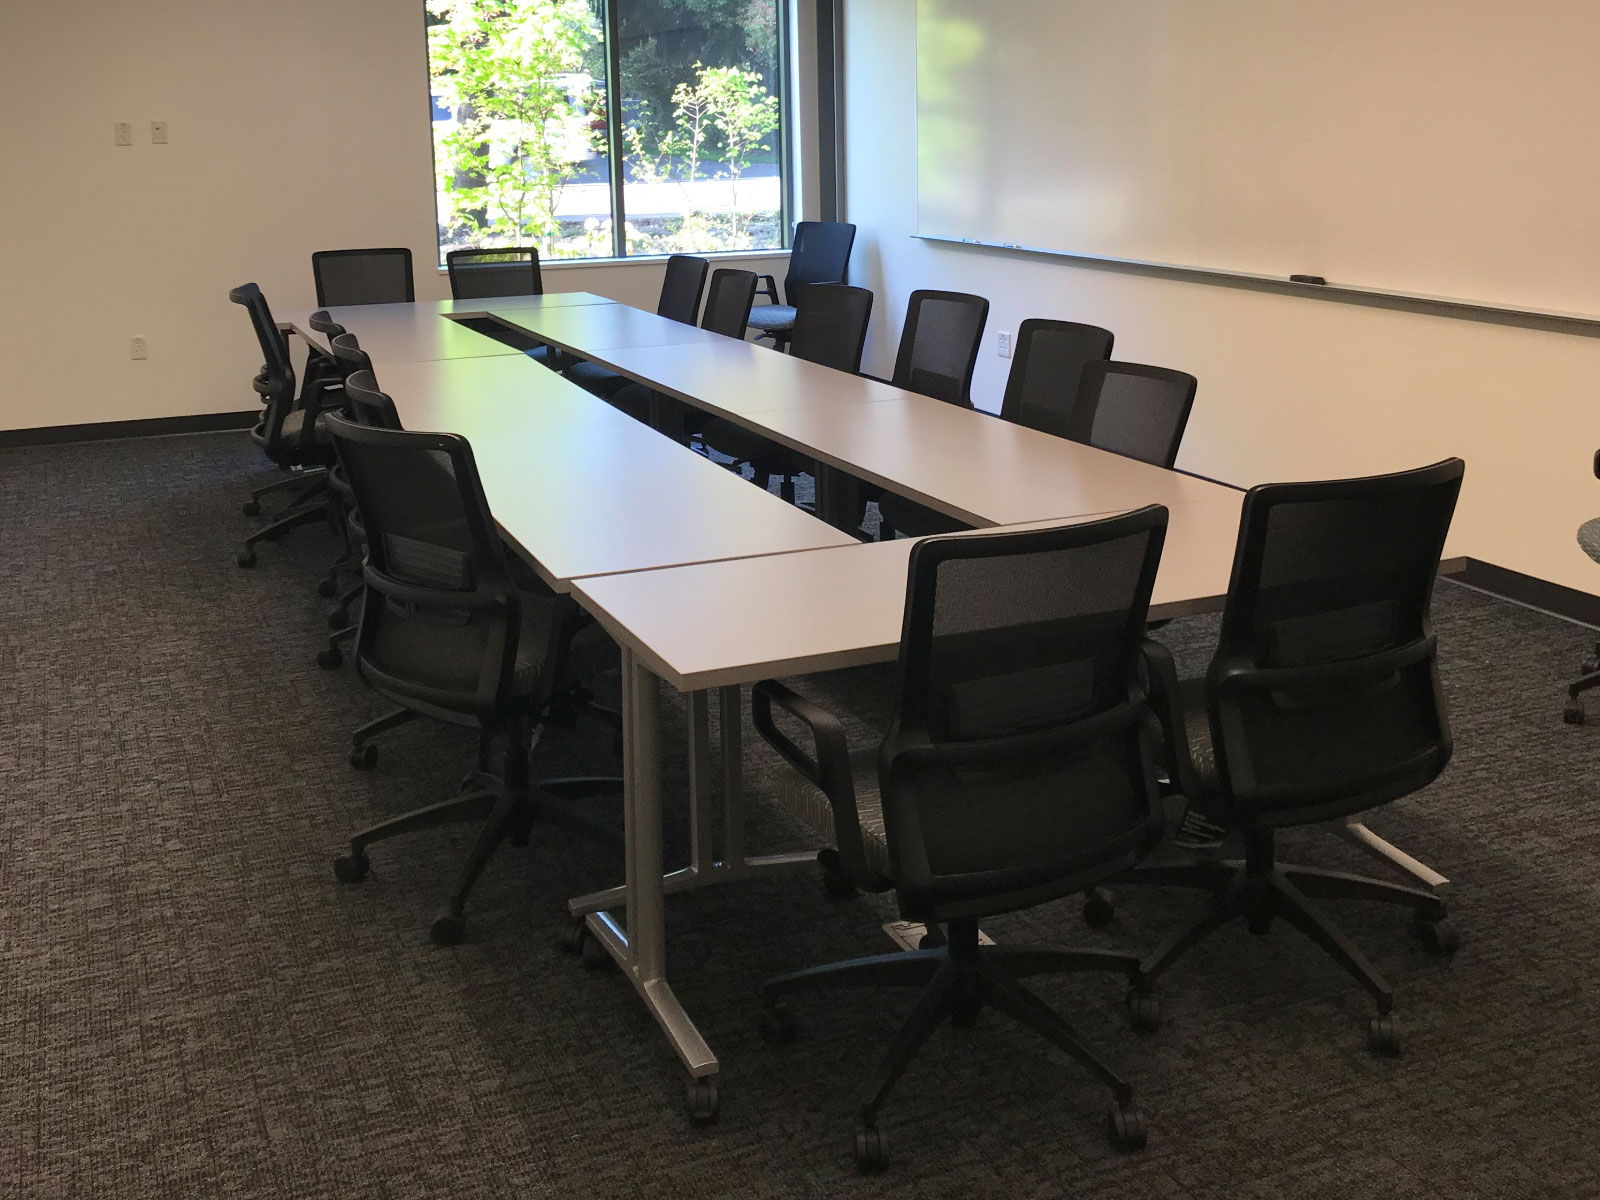 A long meeting table with many chairs in a Harmony campus conference room